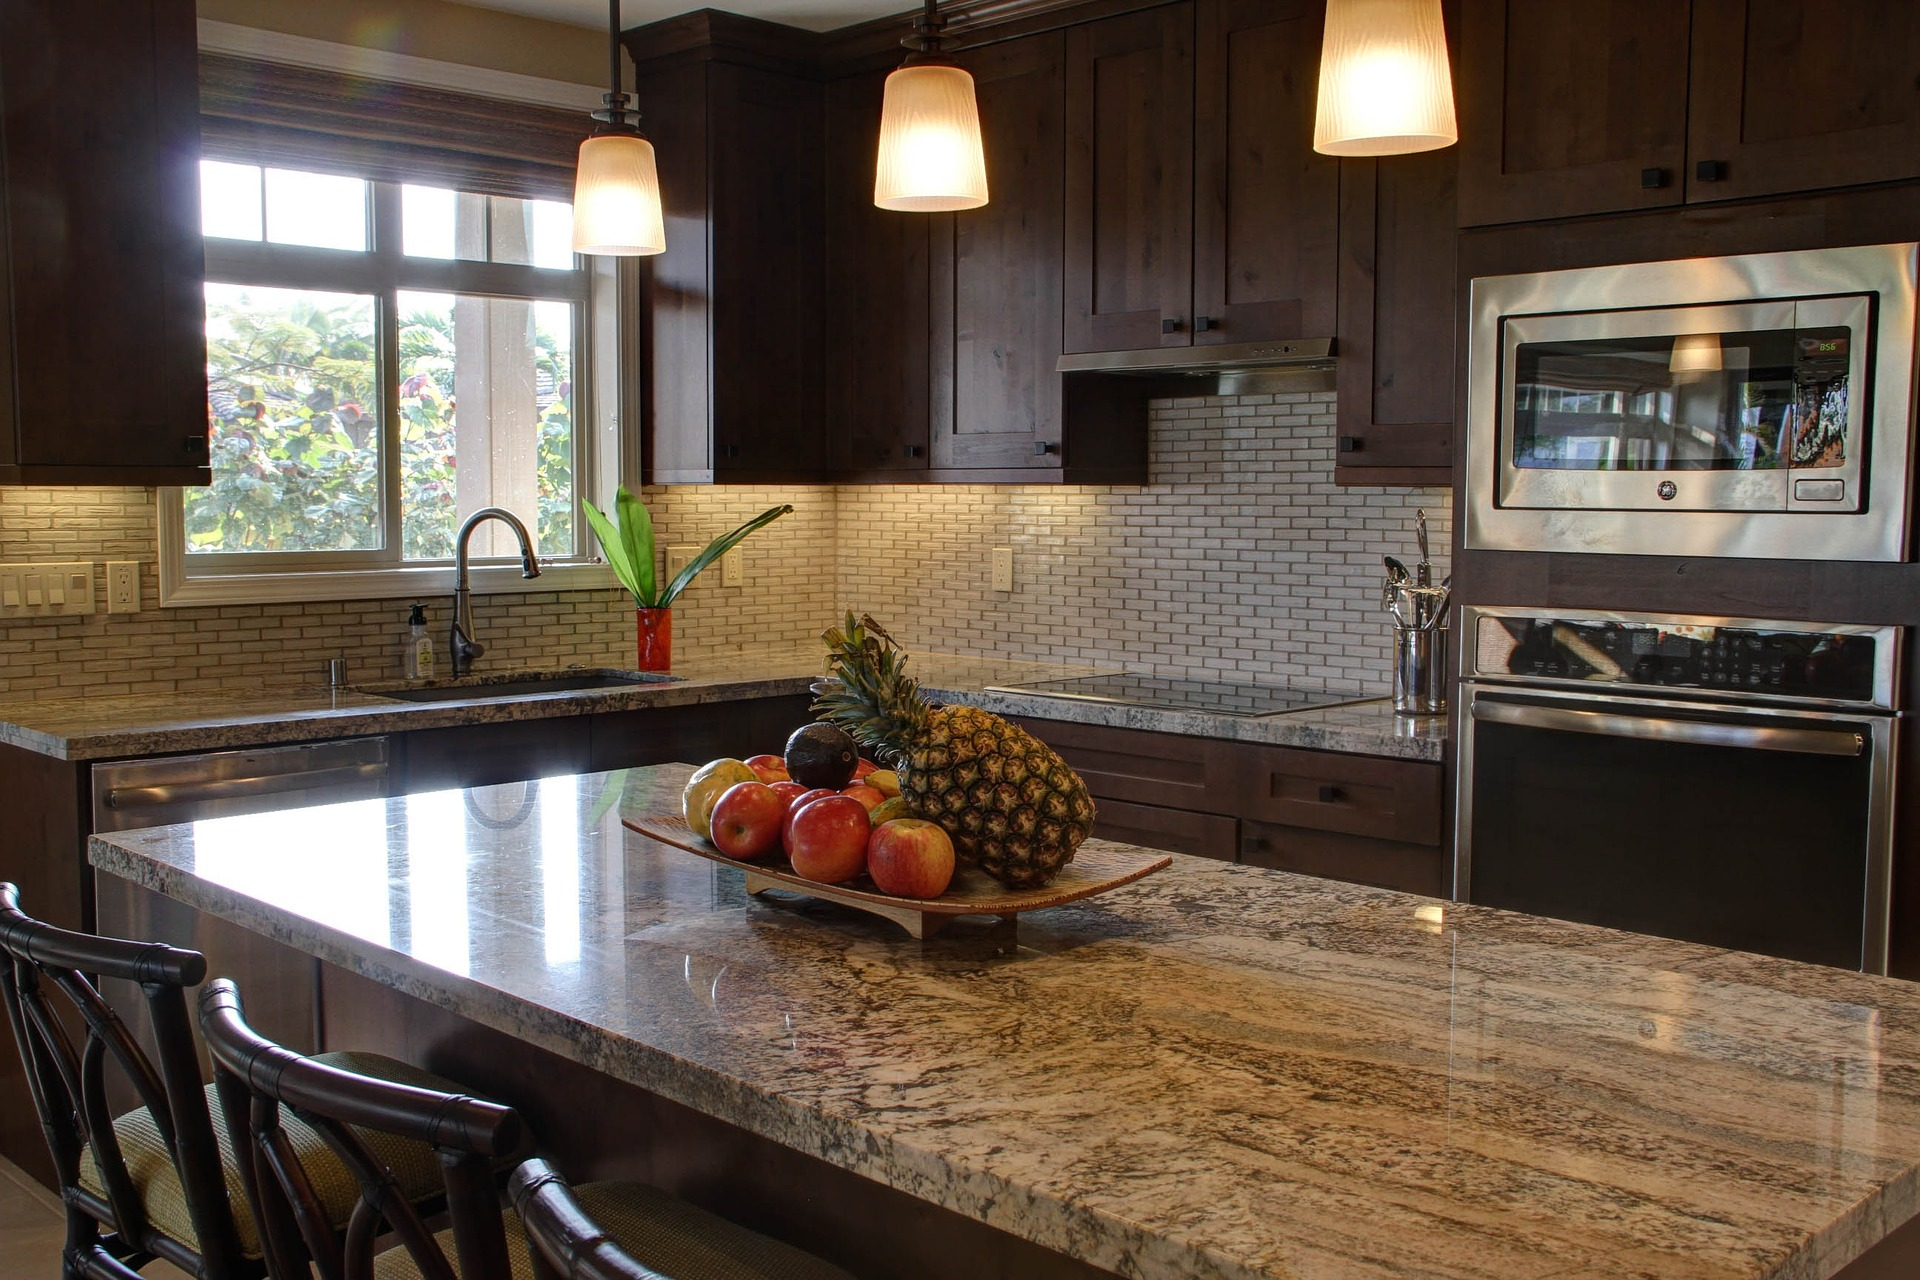 Cabinet Refacing in New Jersey